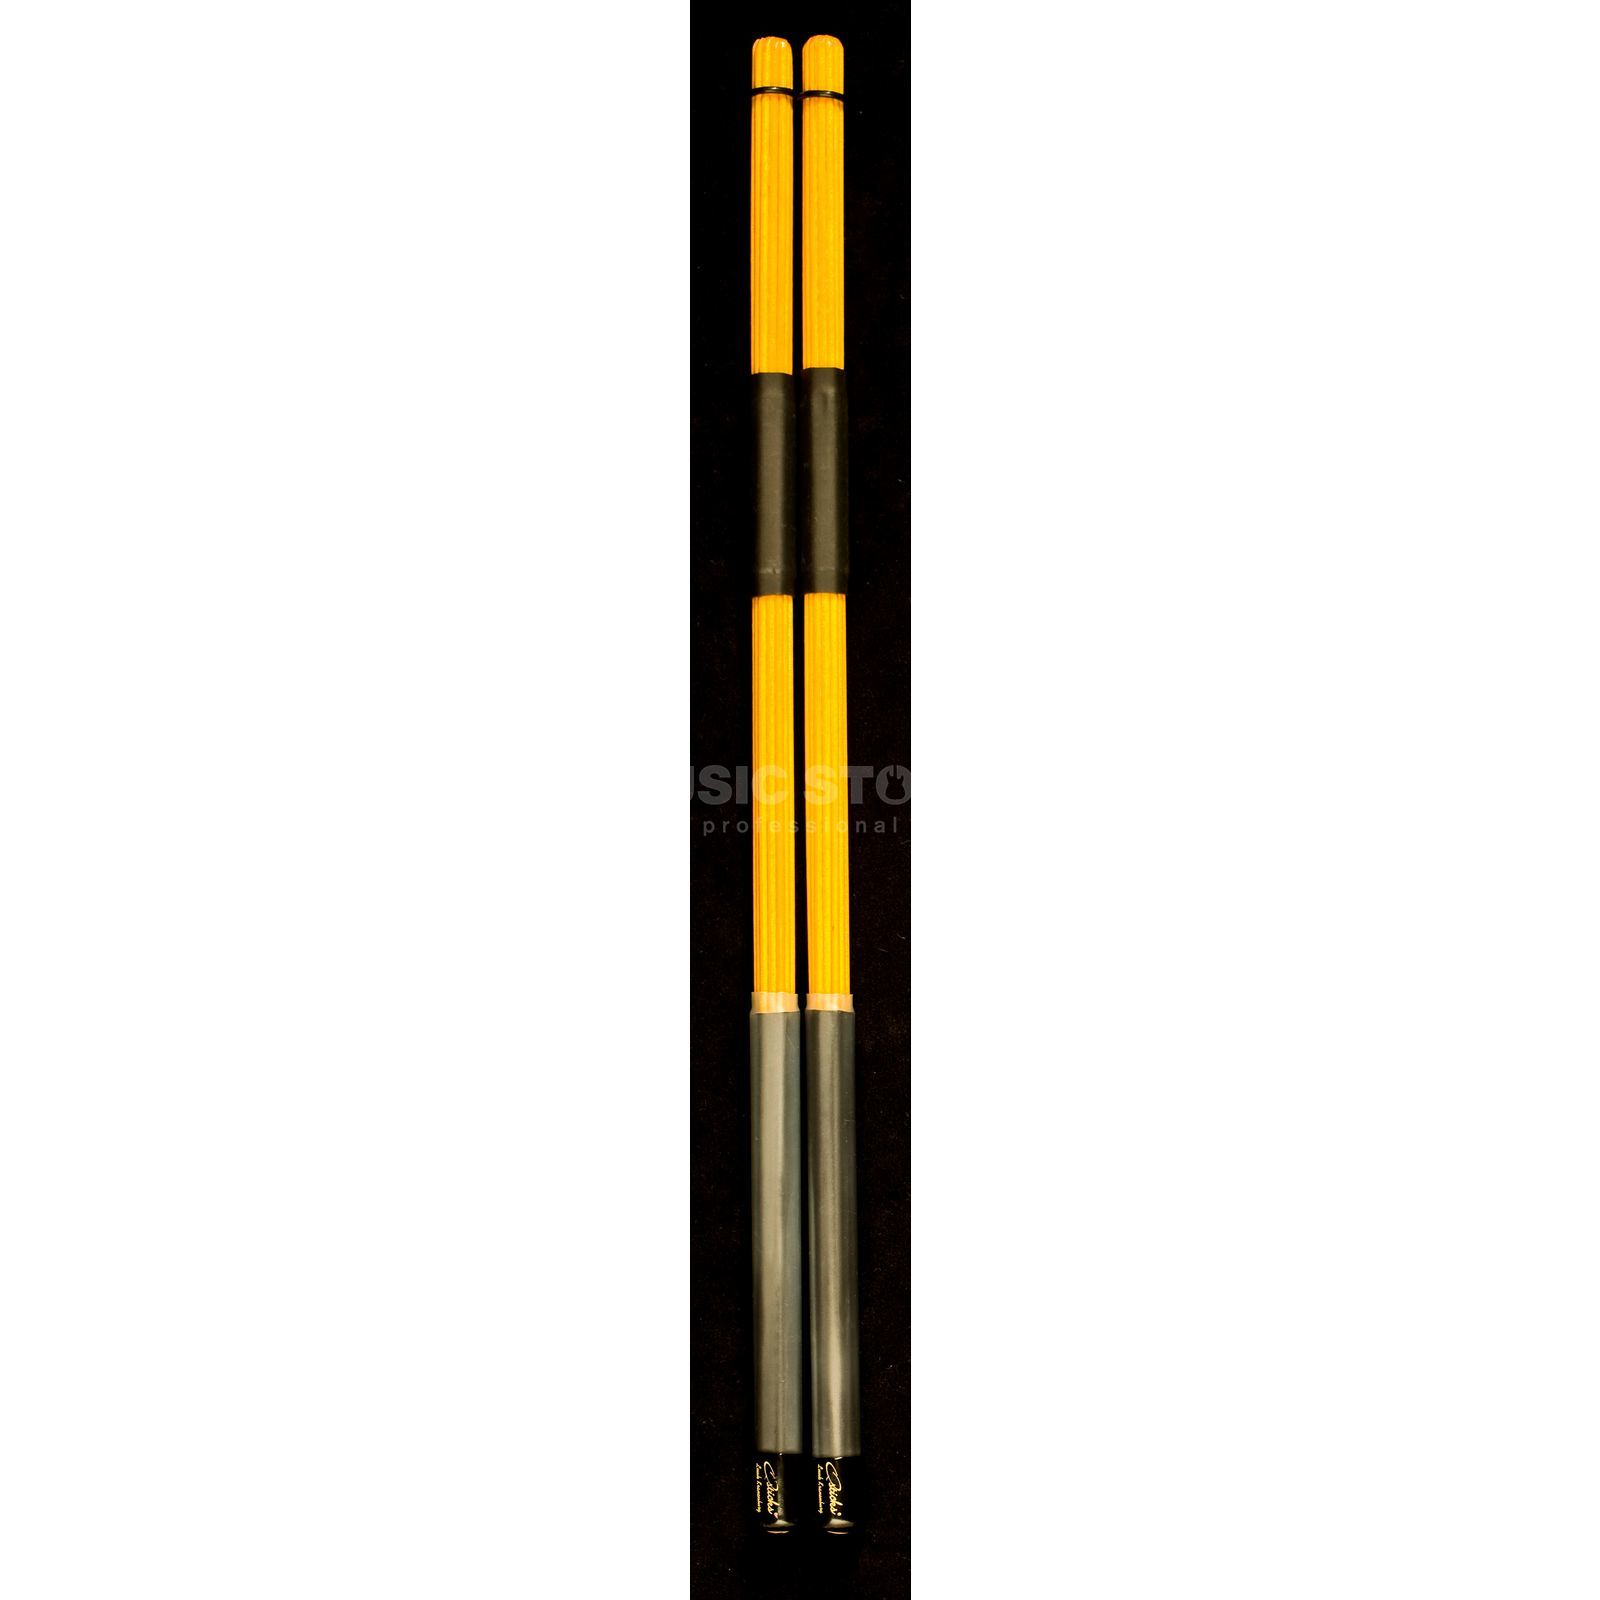 QPercussion QSticks/Rods Whisper 7A, Coloured Produktbild